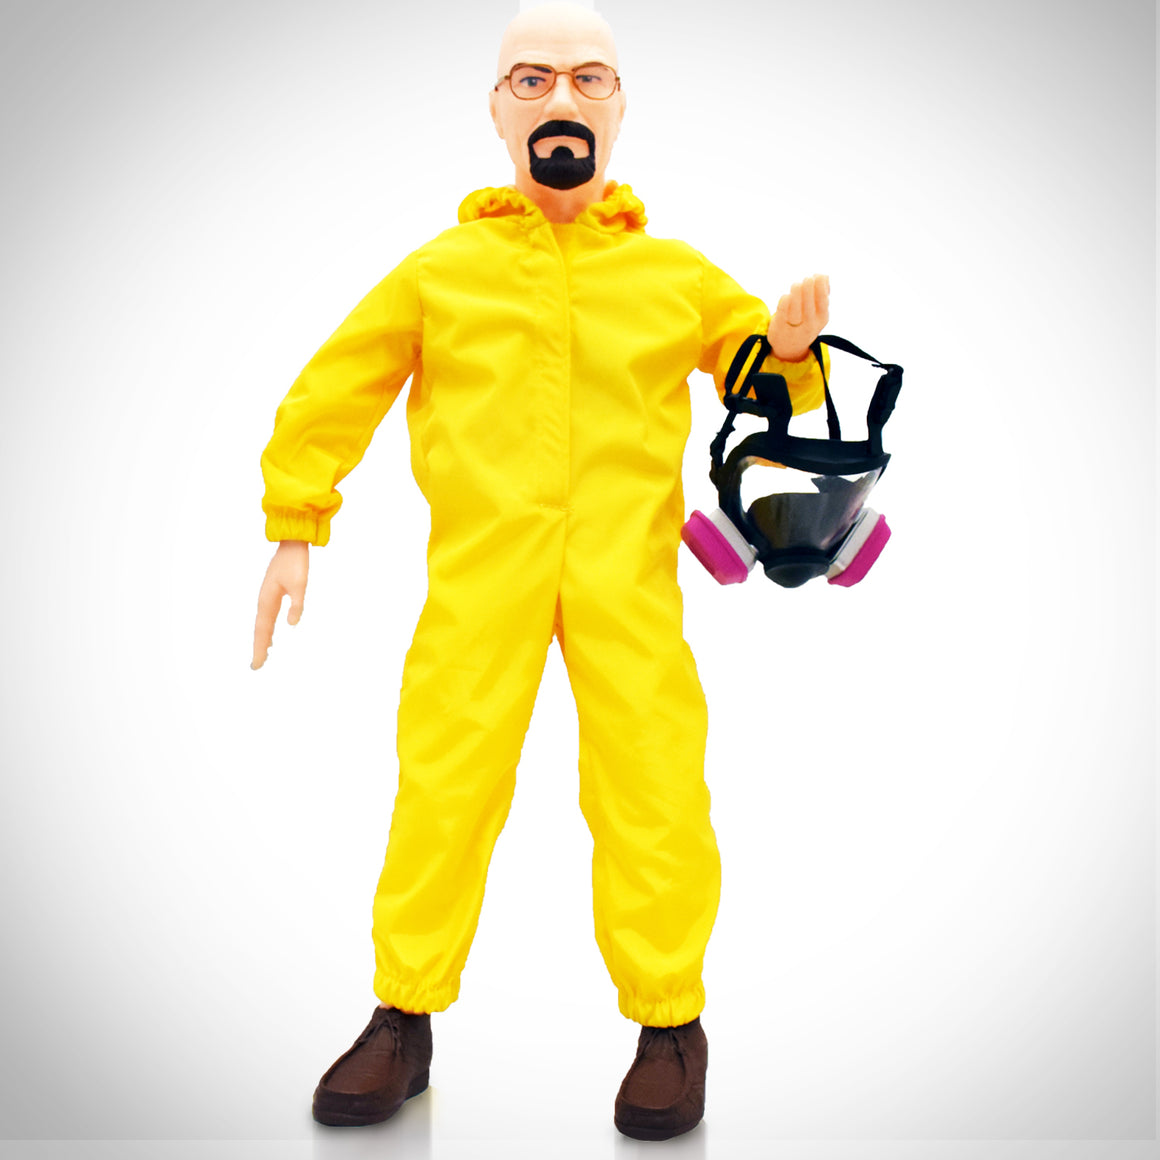 'BREAKING BAD - WALTER WHITE COOKING' Talking Statue